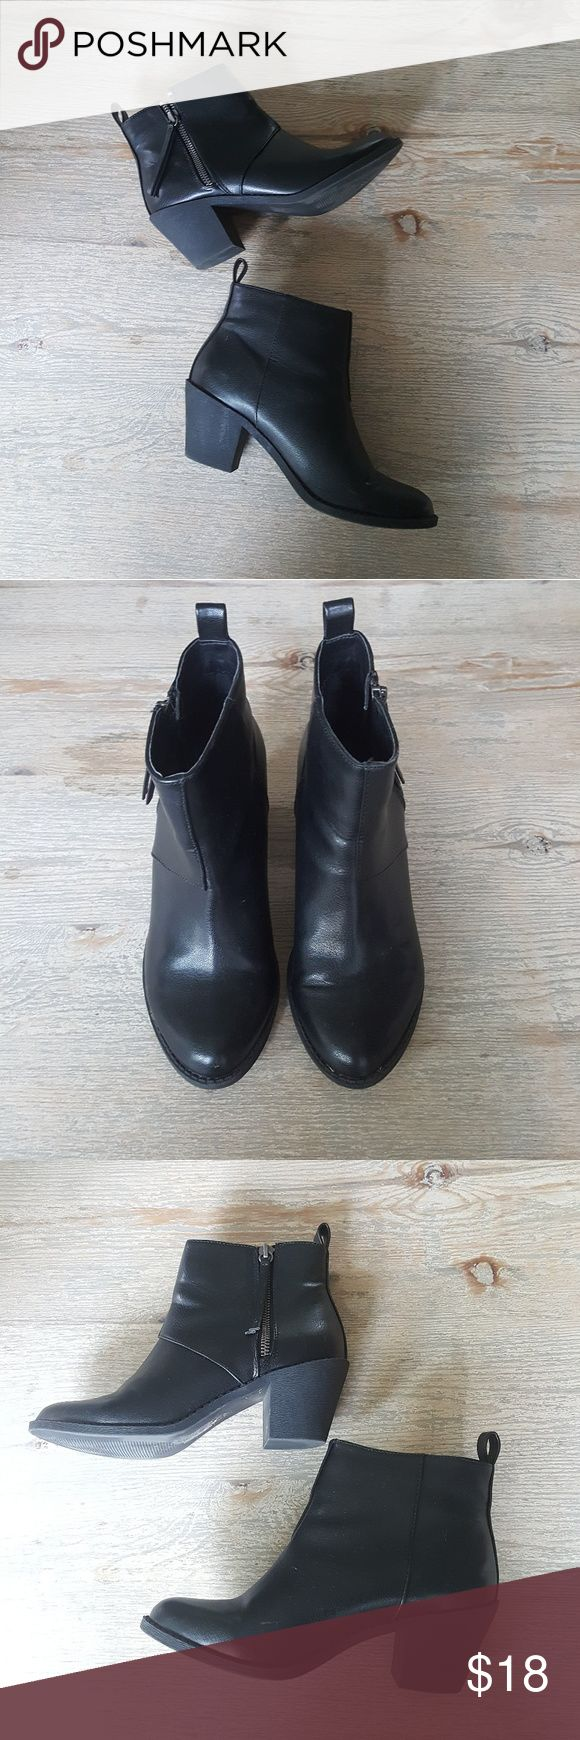 "*3 FOR 30* Black Booties Worn once, show normal signs of wear but are still in great condition! From Forever 21. Technically size 6 but I'm usually a 7 and they fit on my feet fine, just a bit too snug to wear very comfortably.   Bundle w/ 2 other listings marked ""*3 FOR 30*"" and offer $30 and I'll accept!!  Tagging ASOS, Nasty Gal, Urban Outfitters Forever 21 Shoes Ankle Boots & Booties"